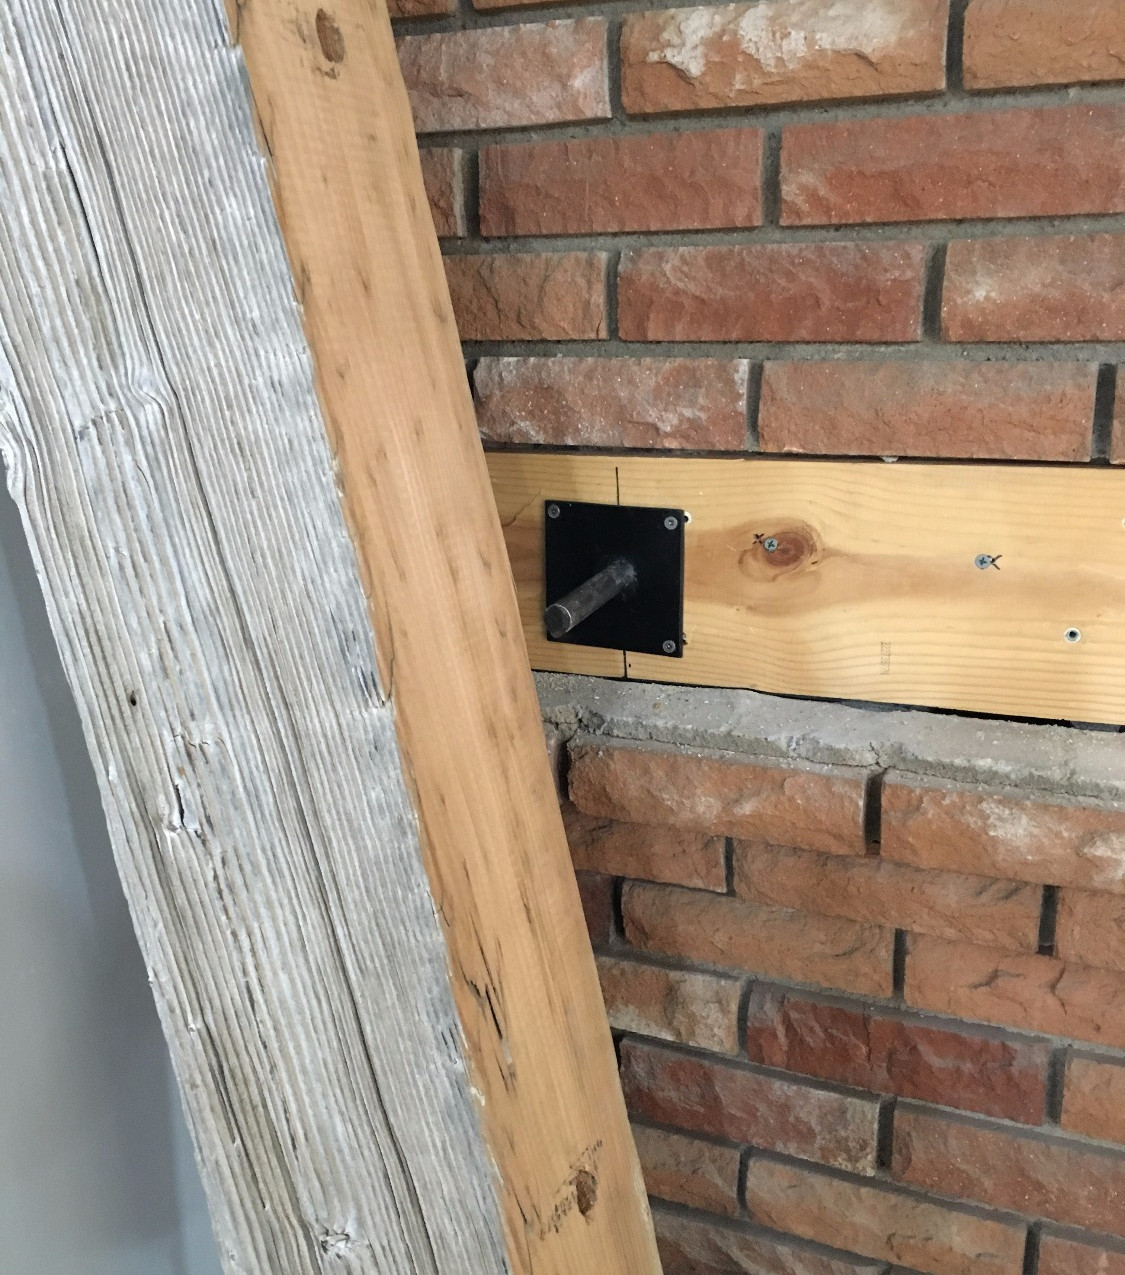 Planed the back side of the beam to sit flush into the red brick gaps.